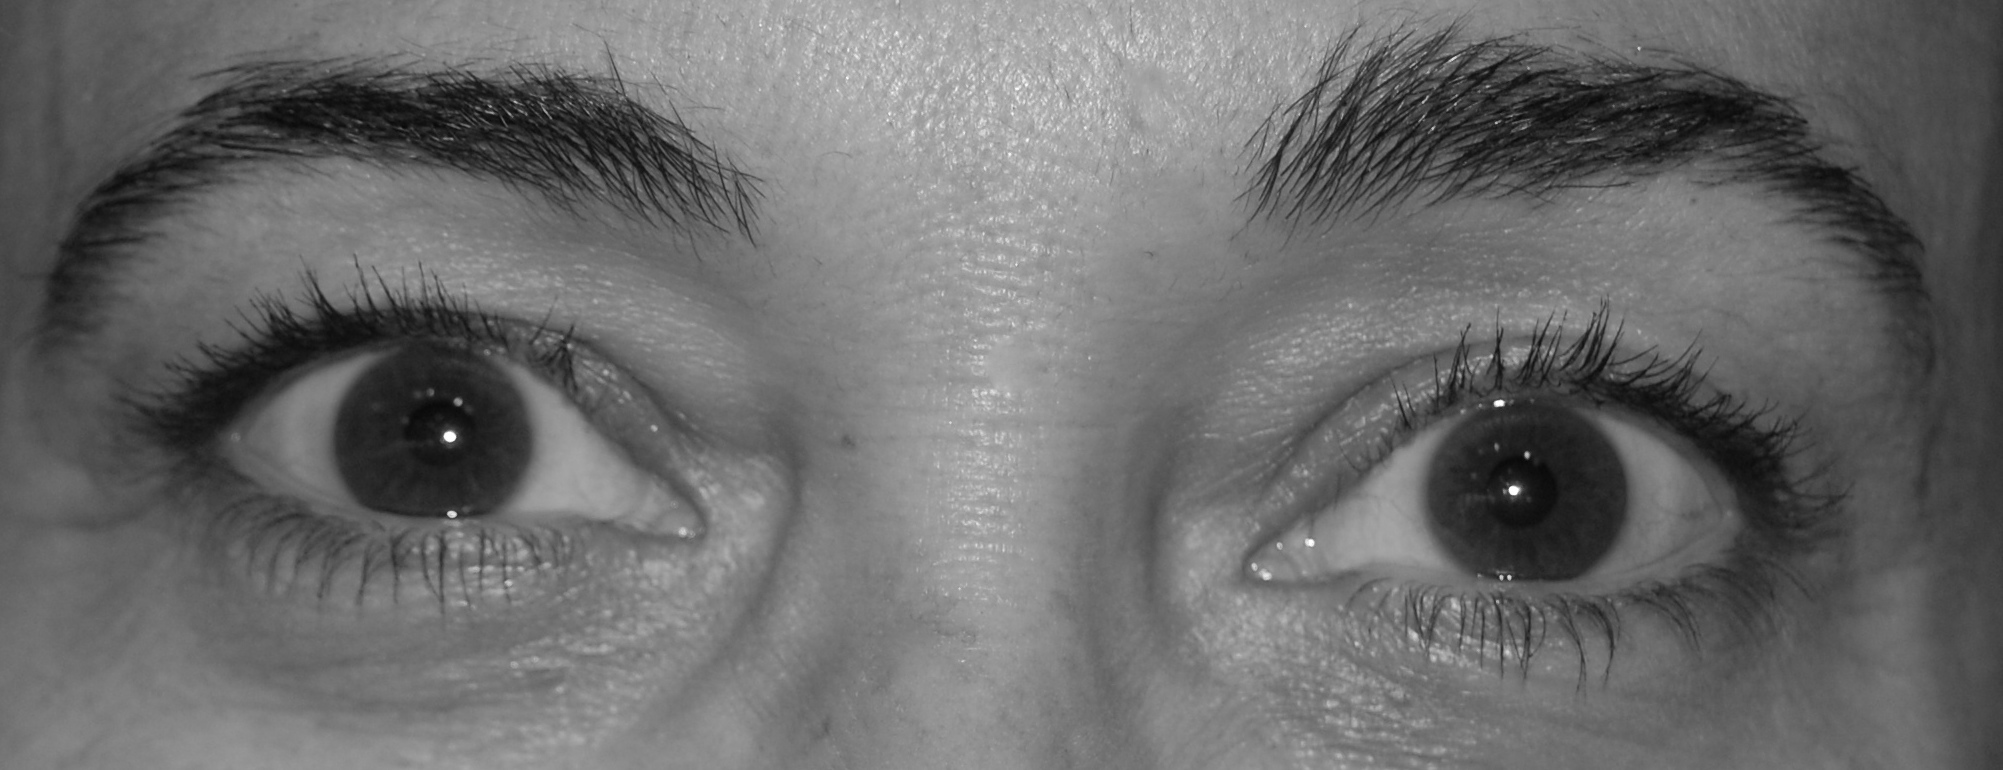 e60e5bb5d6f The pictures don't do it justice.... {AMPLIF?eye Lash & Brow ...